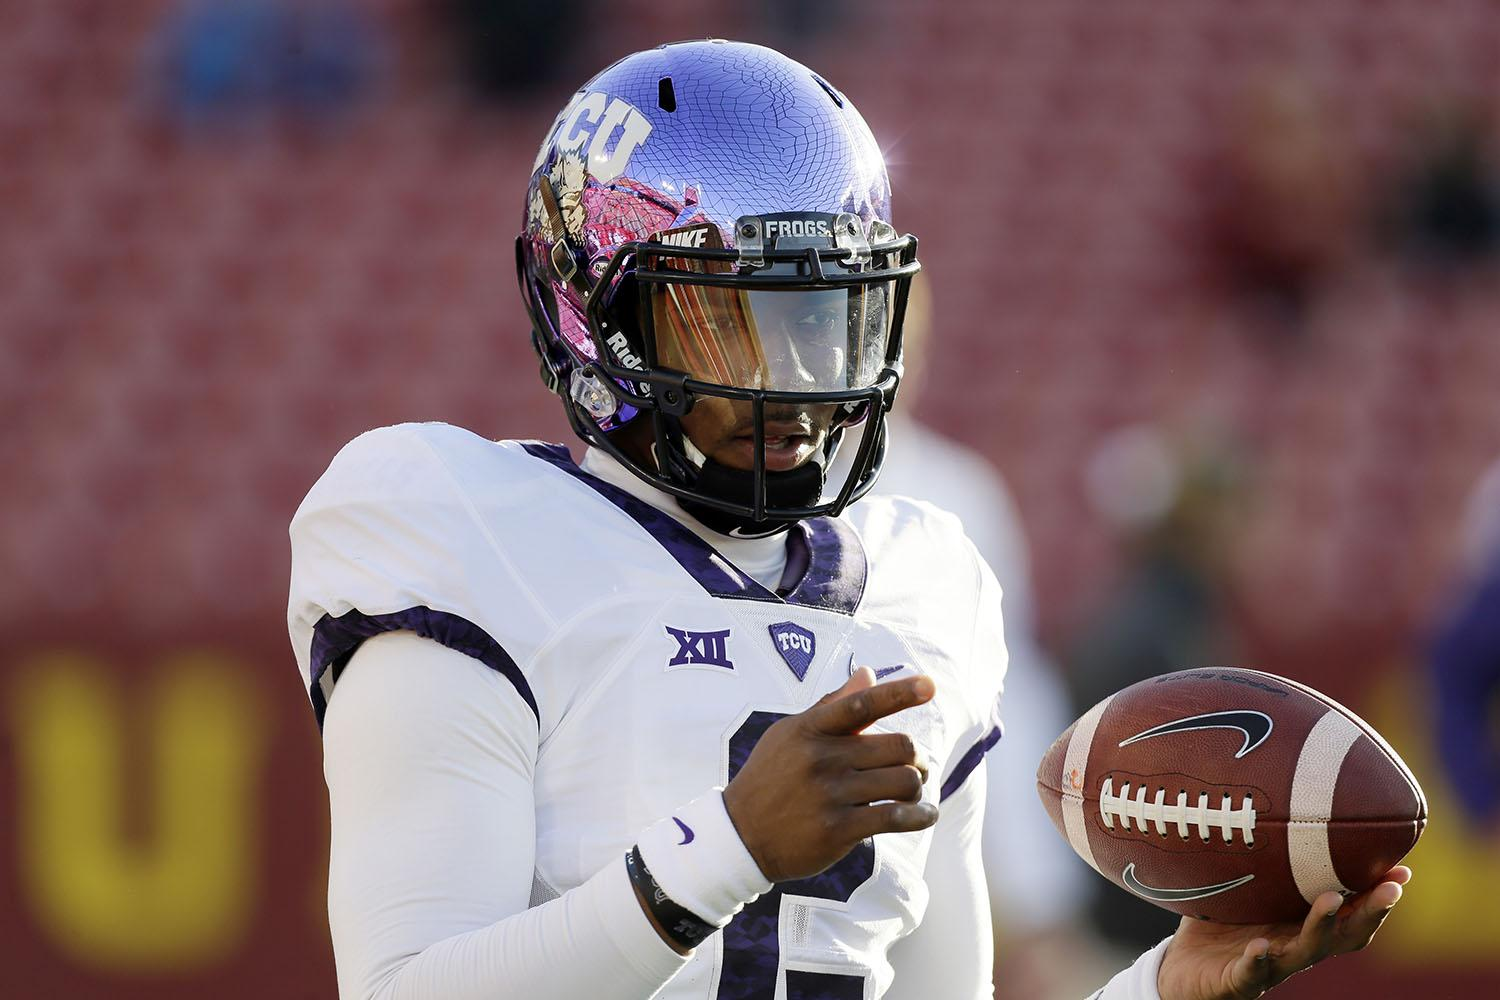 TCU quarterback Trevone Boykin warms up before an NCAA college football game against Iowa State, Saturday, Oct. 17, 2015, in Ames, Iowa. (AP Photo/Charlie Neibergall)